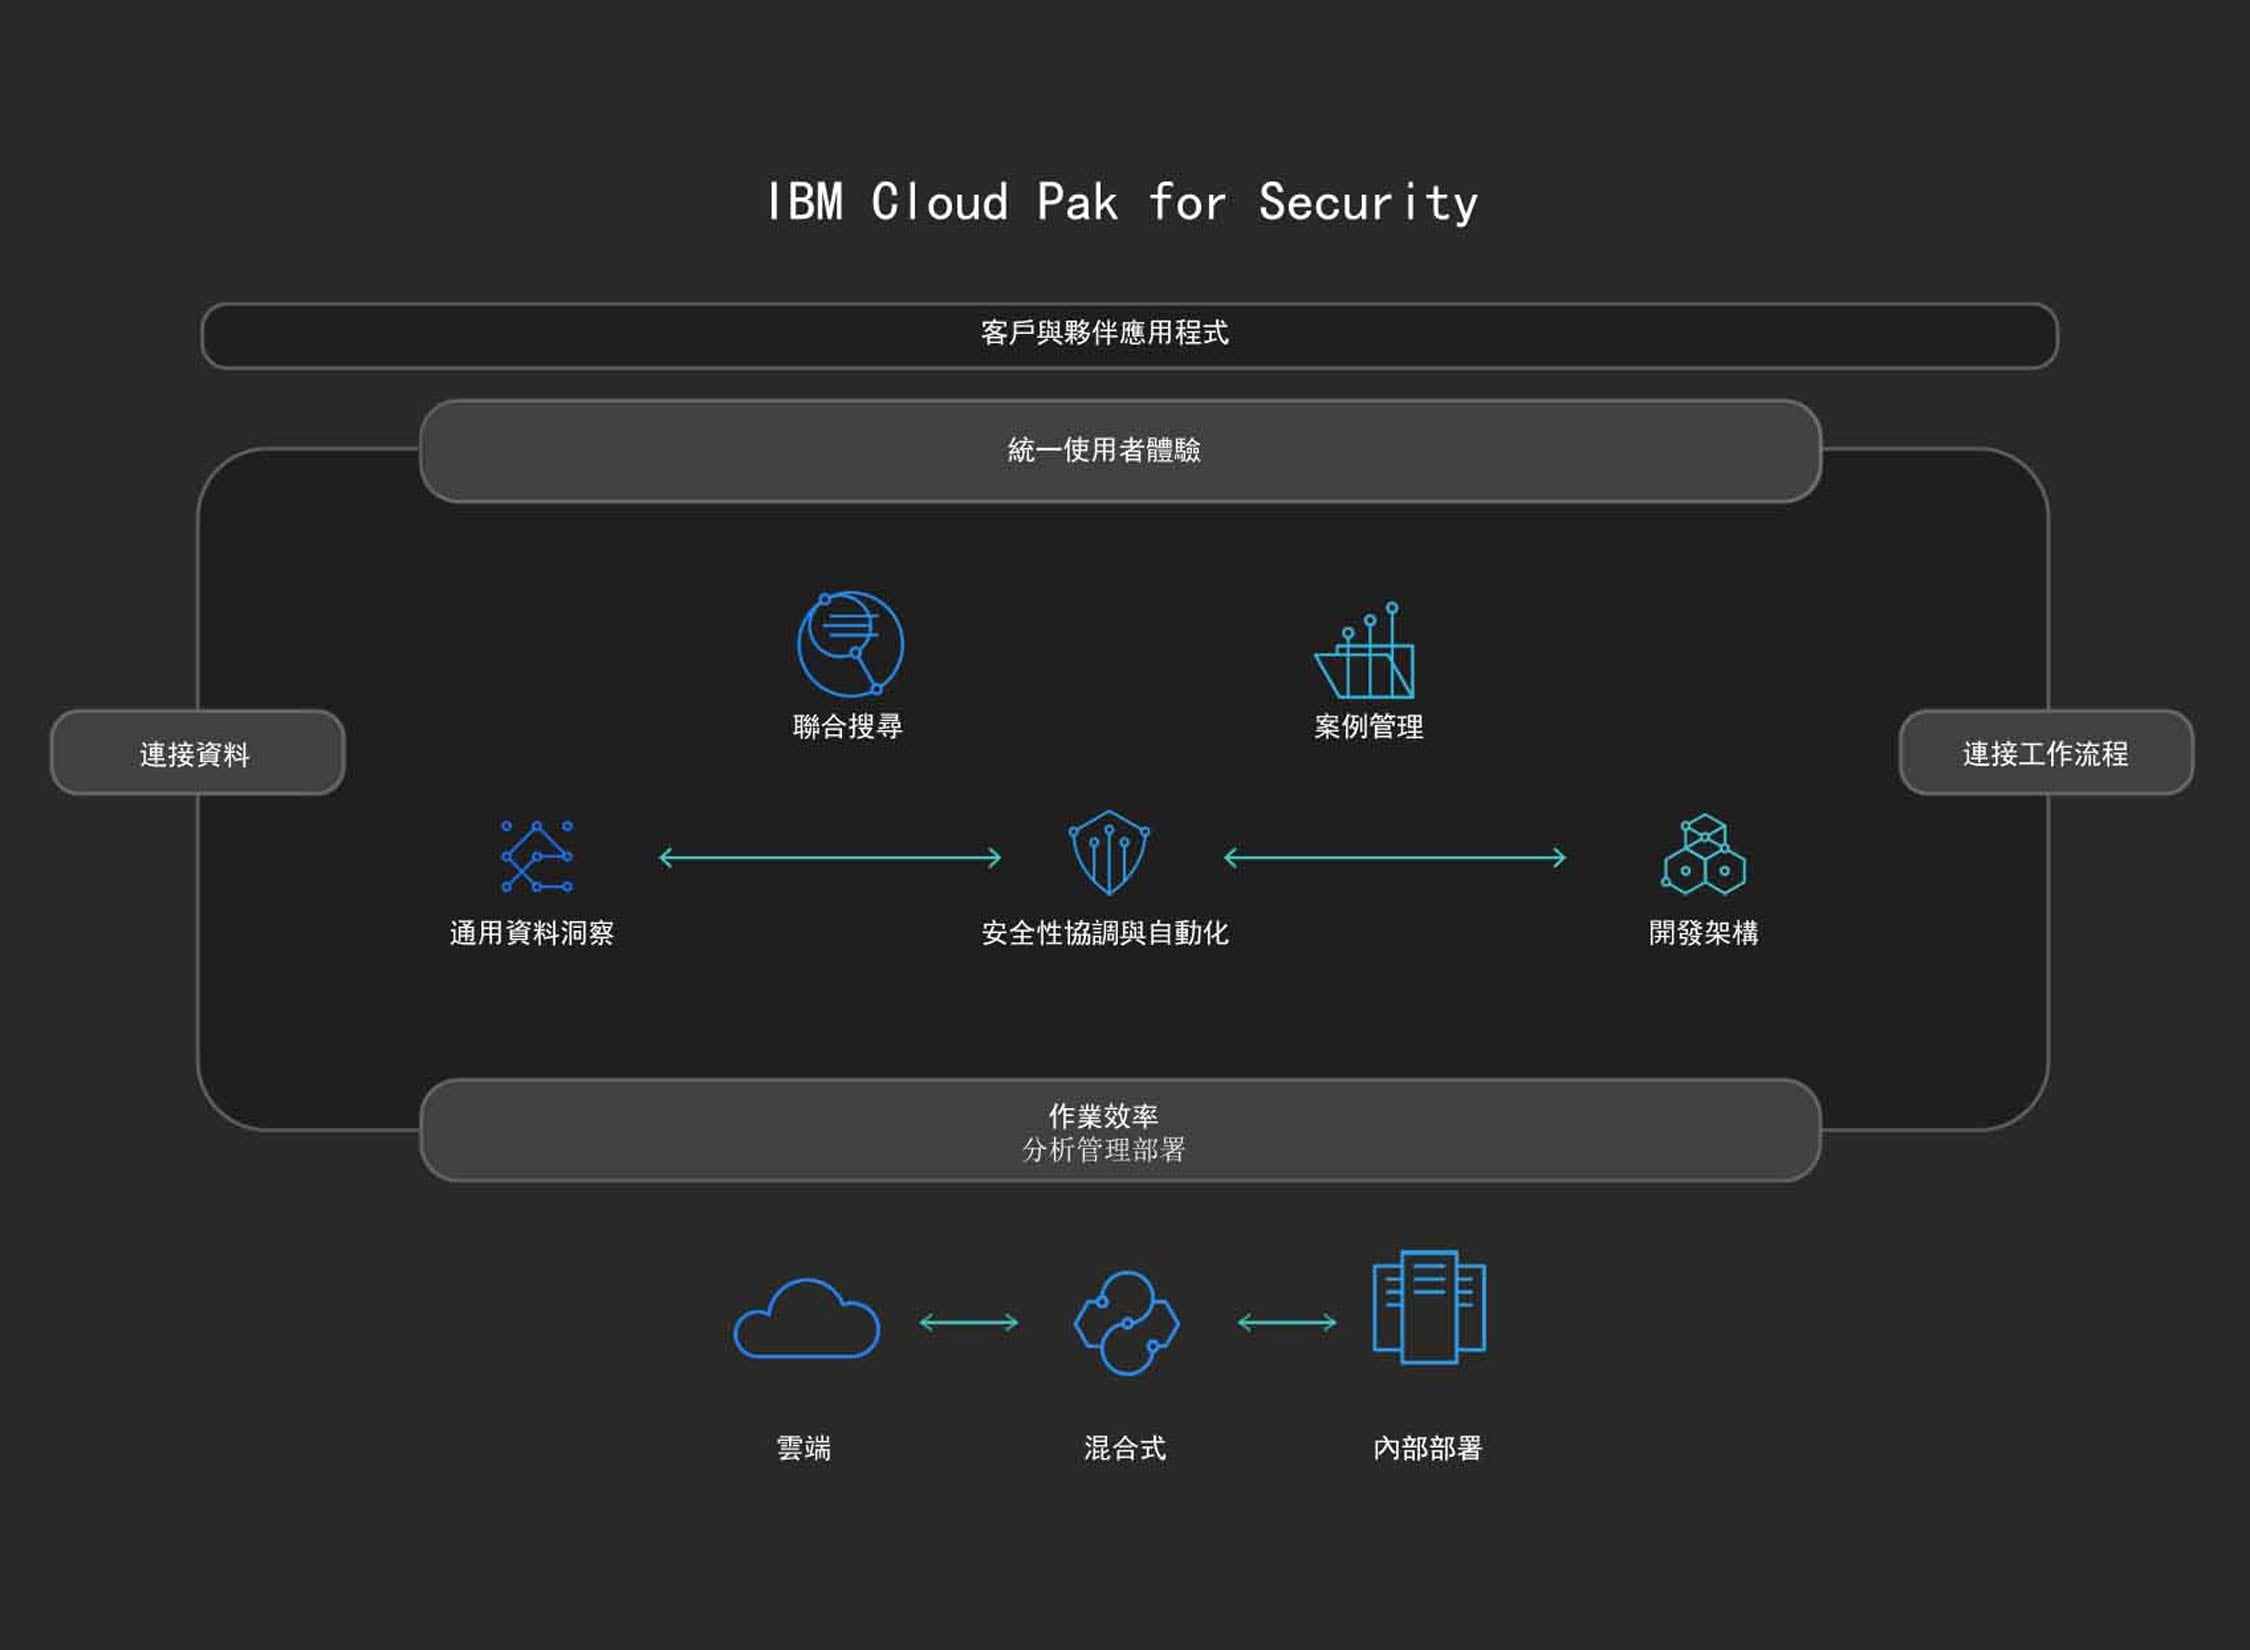 IBM Cloud Pak for Security 圖表